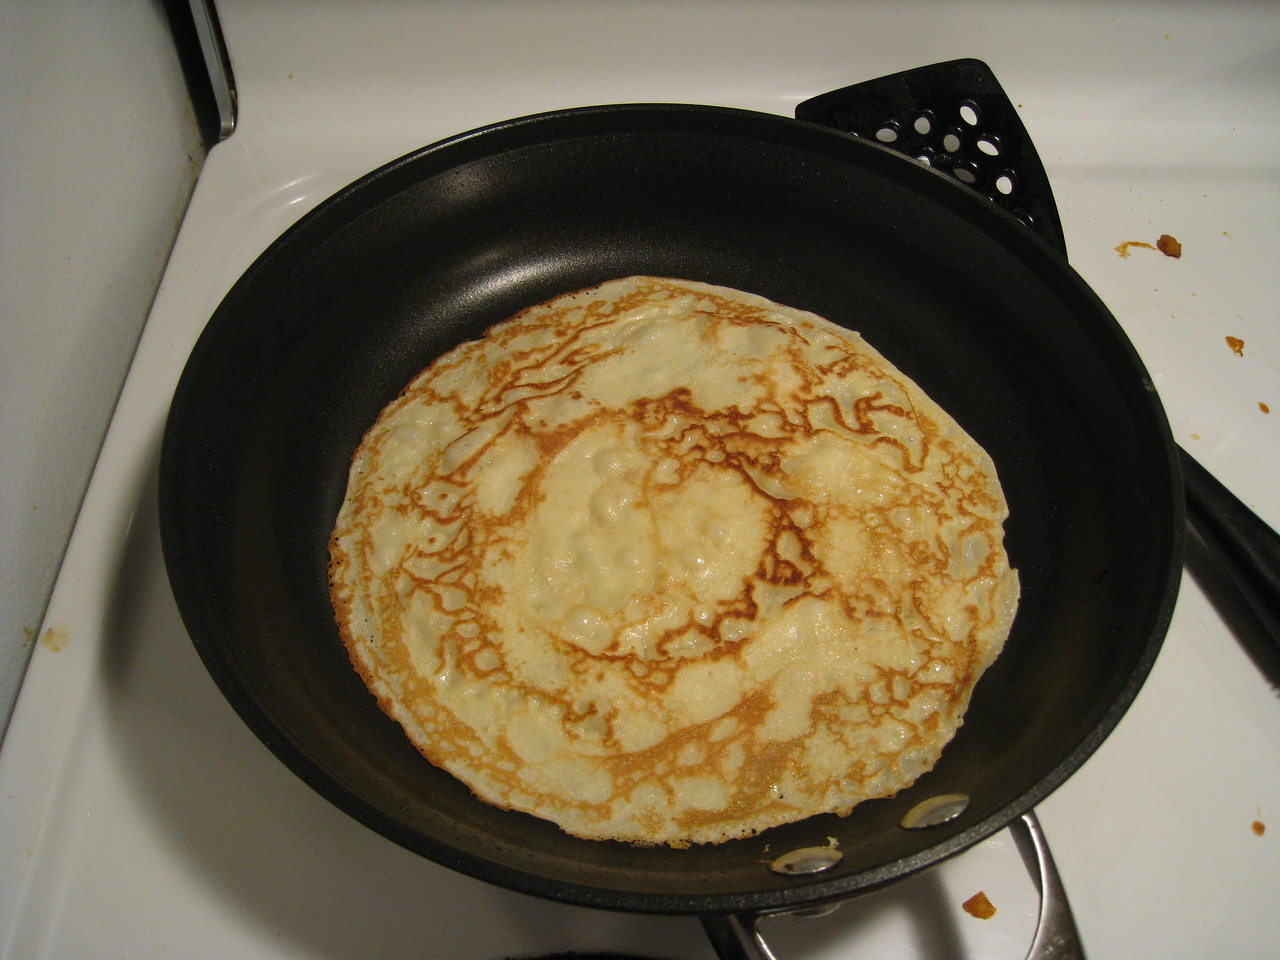 So for the frst time I tried my hand at making pancakes for Shrove Tuesday.